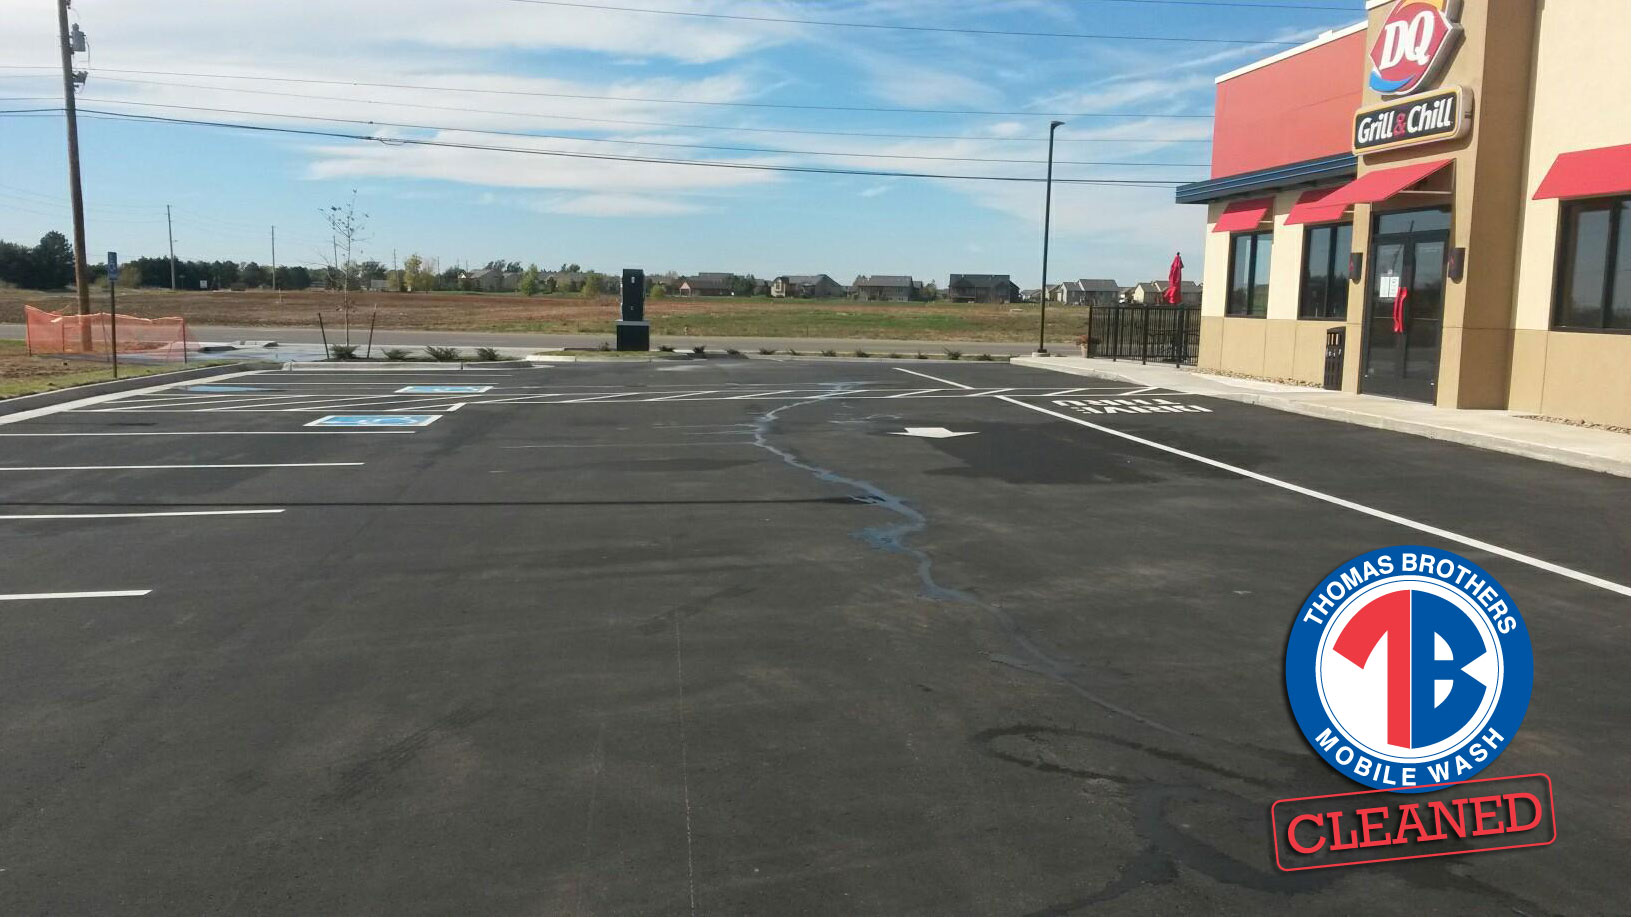 dairy-queen-powerwashed-parkinglot.jpg